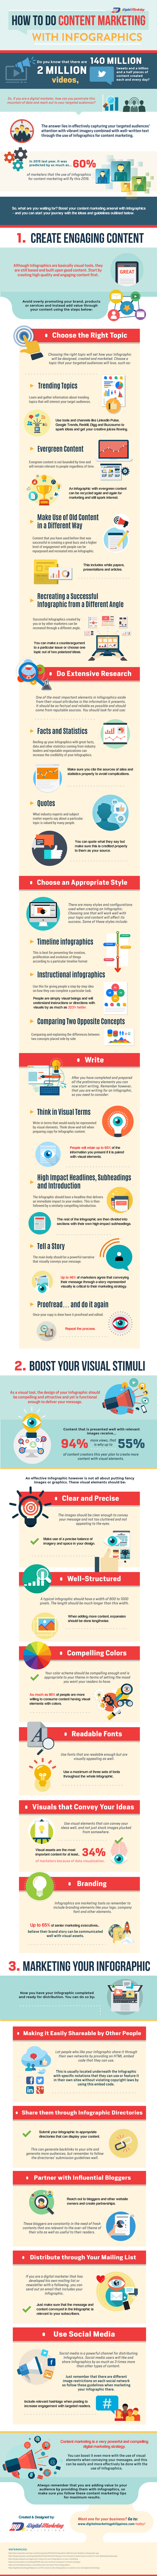 (Infographic) – How to do Content Marketing with Infographics - An Infographic from Digital Marketing Philippines